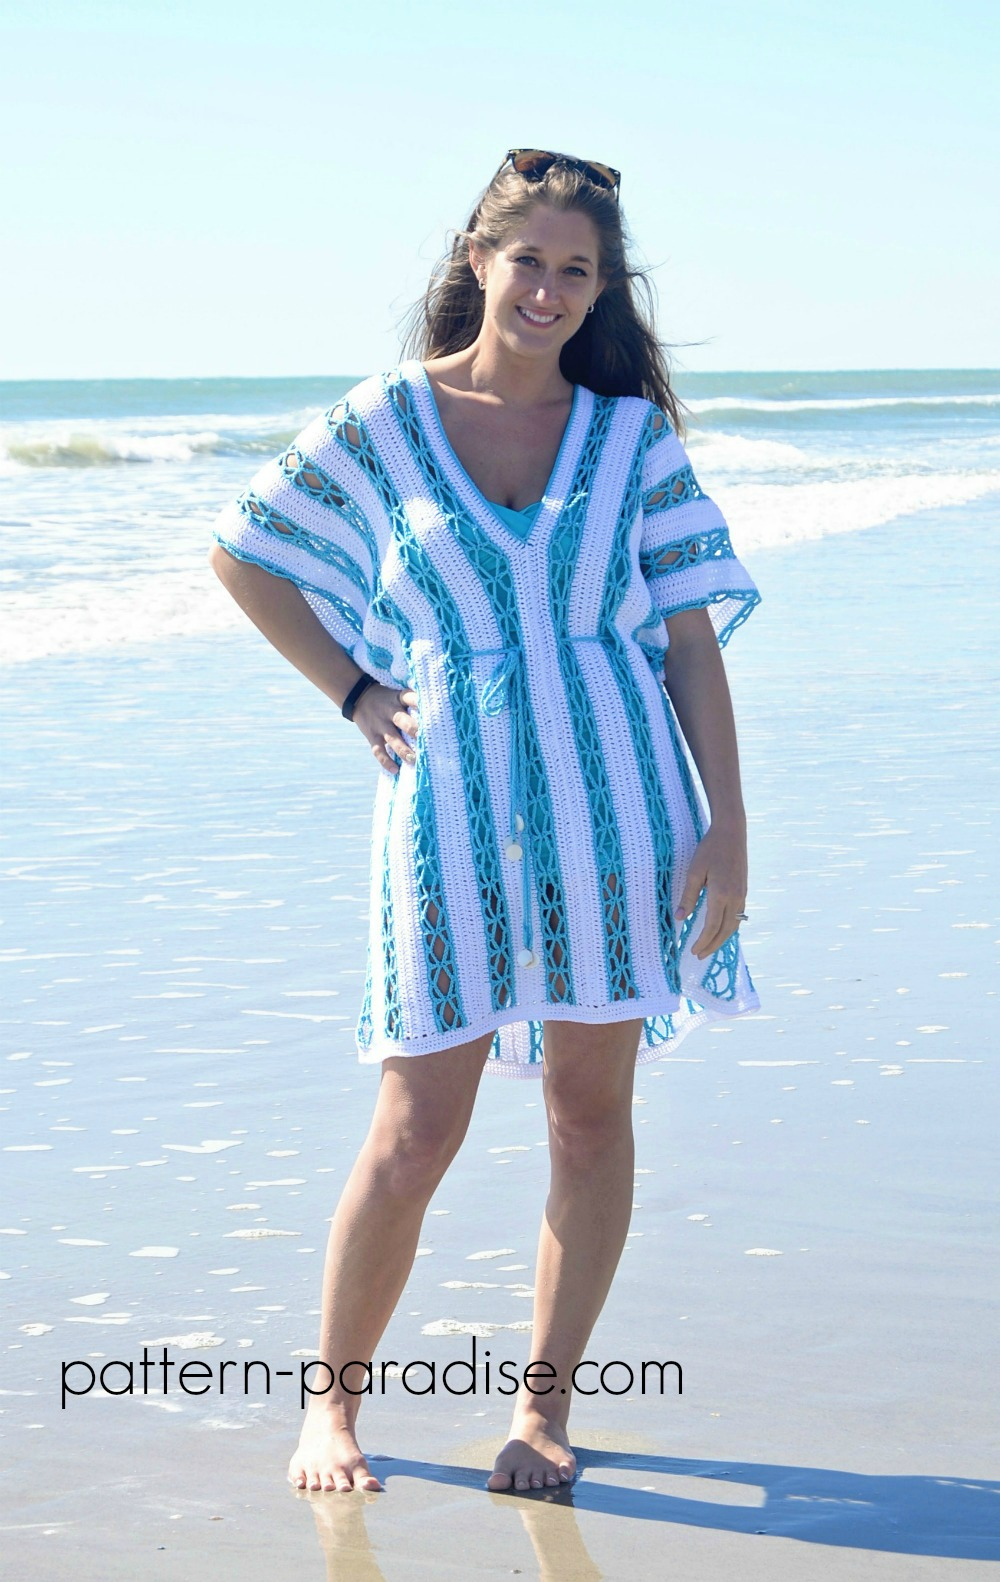 Celebratemomcal Beach Day Cover Up Tunic Pattern Paradise